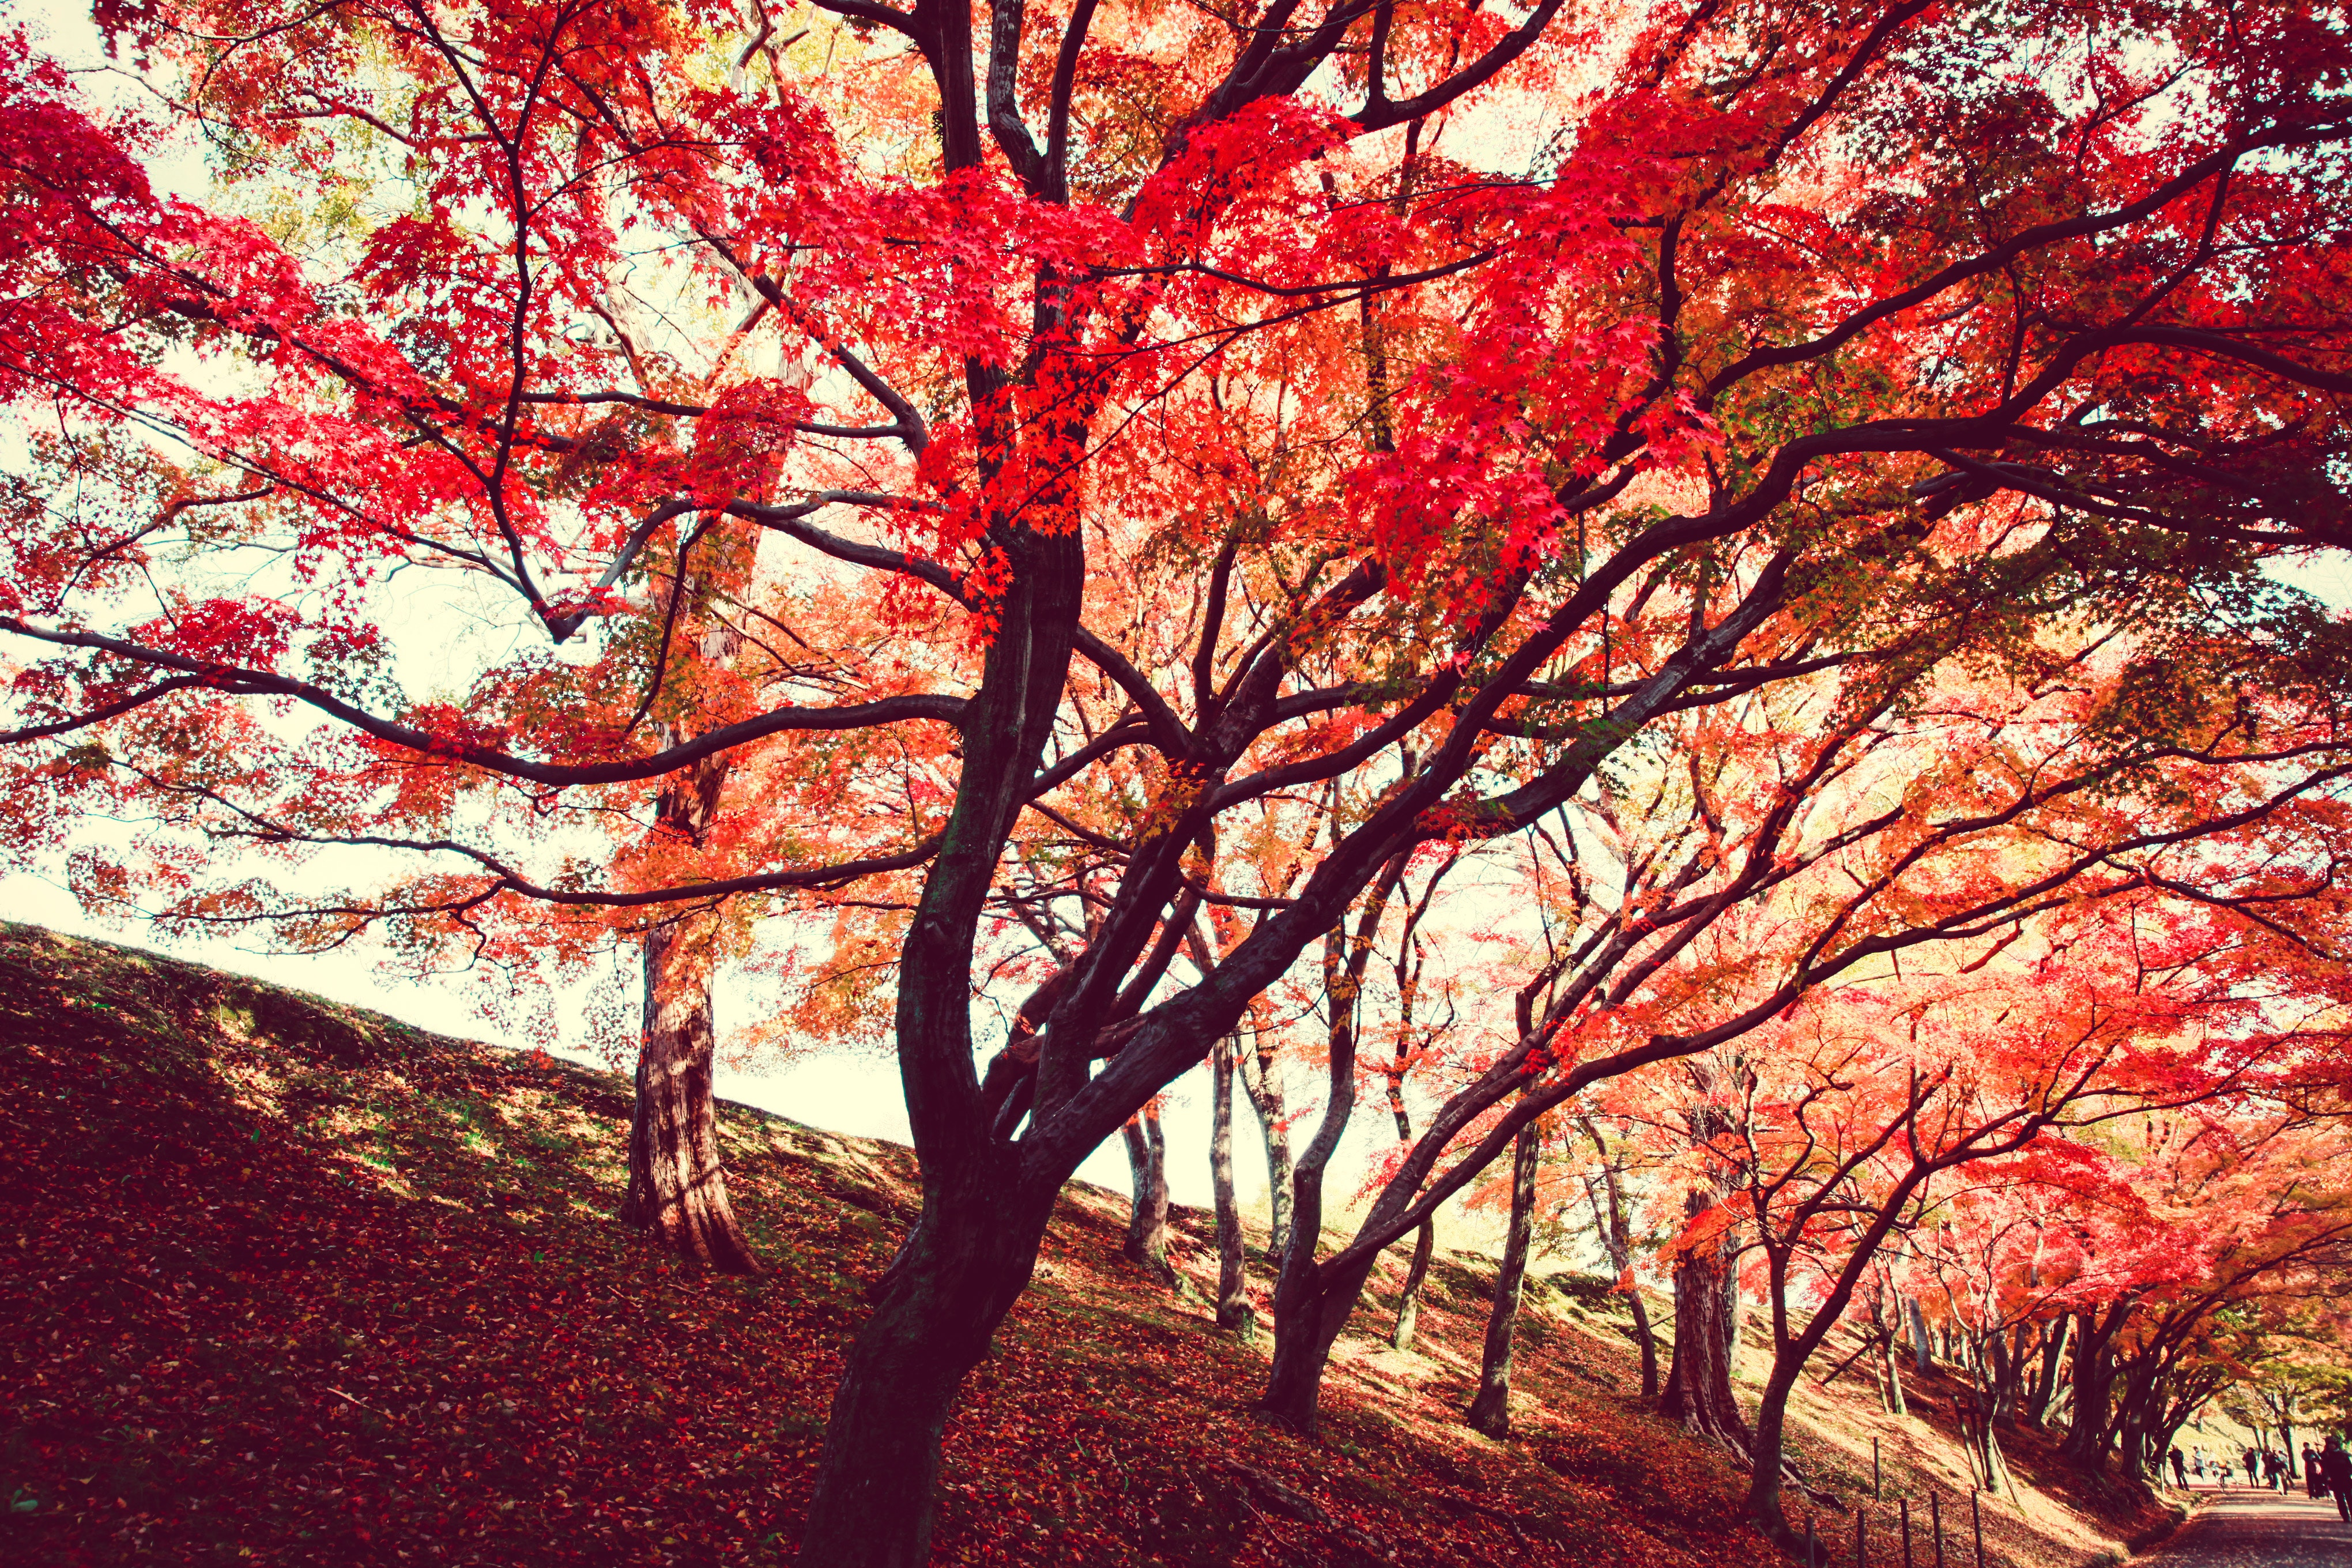 Red Trees, Park, Outdoors, Nature, Pathway, HQ Photo